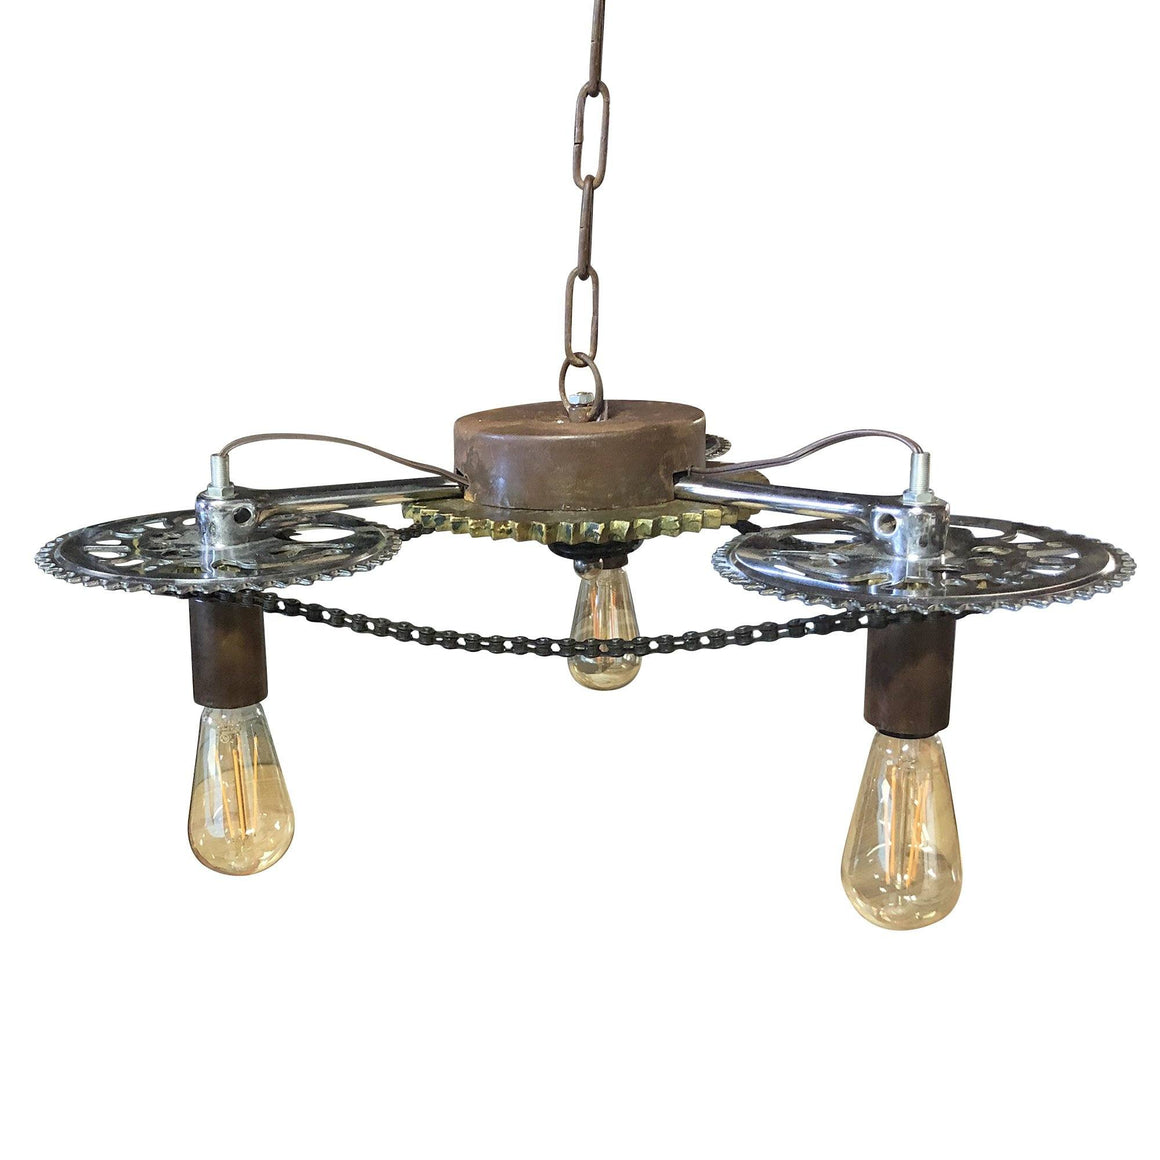 Industrial Steampunk Pendant Lamp - Side Winder Cogs - Ceiling Light-Rustic Deco Incorporated